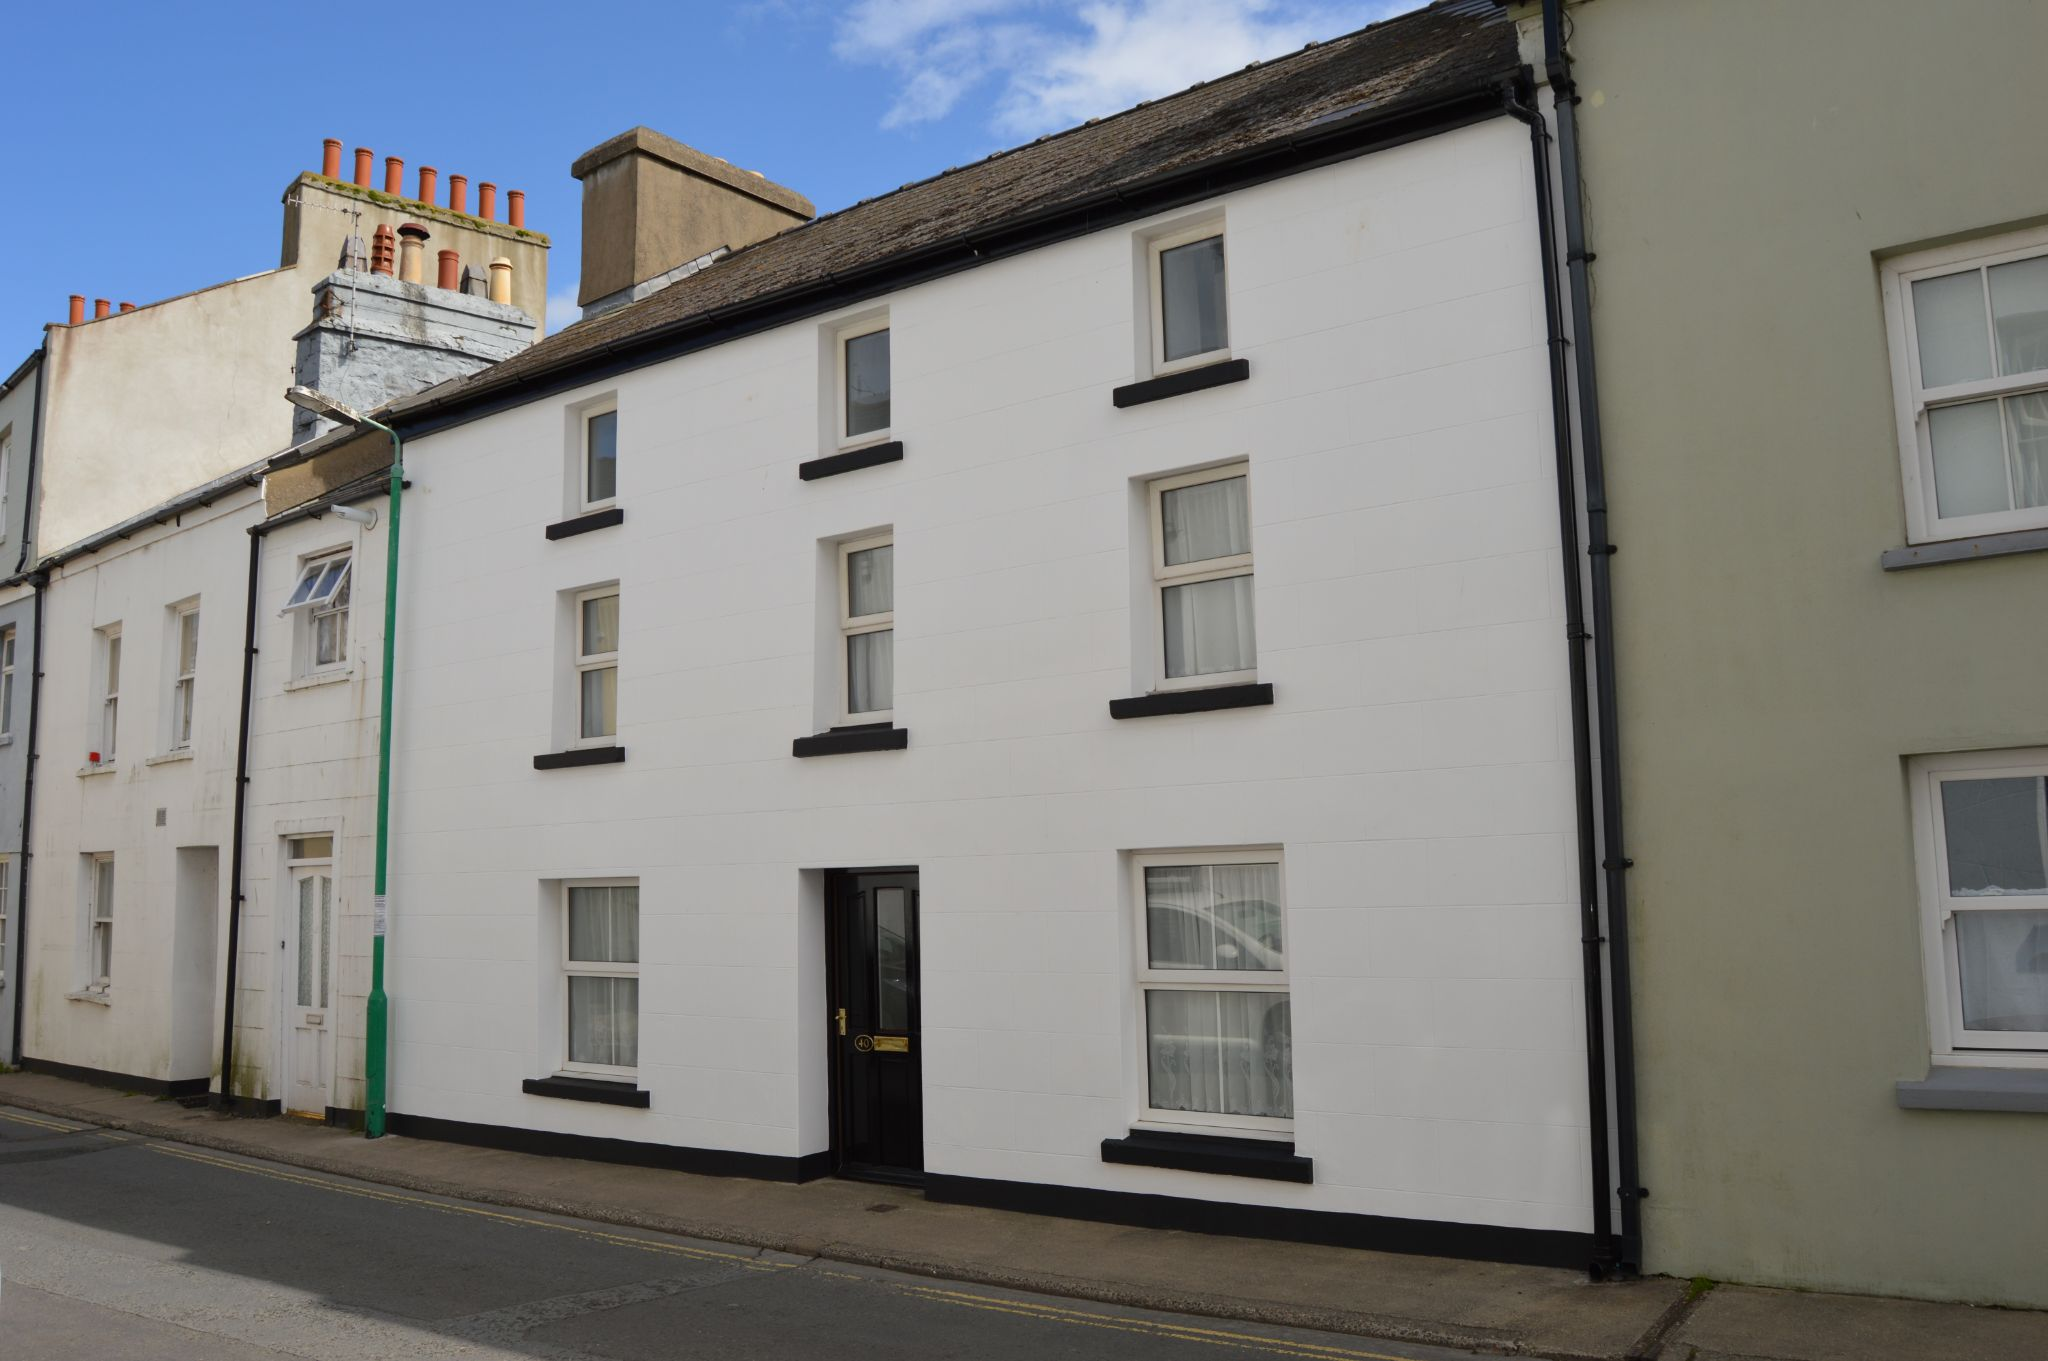 3 bedroom mid terraced house For Sale in Castletown - Photograph 1